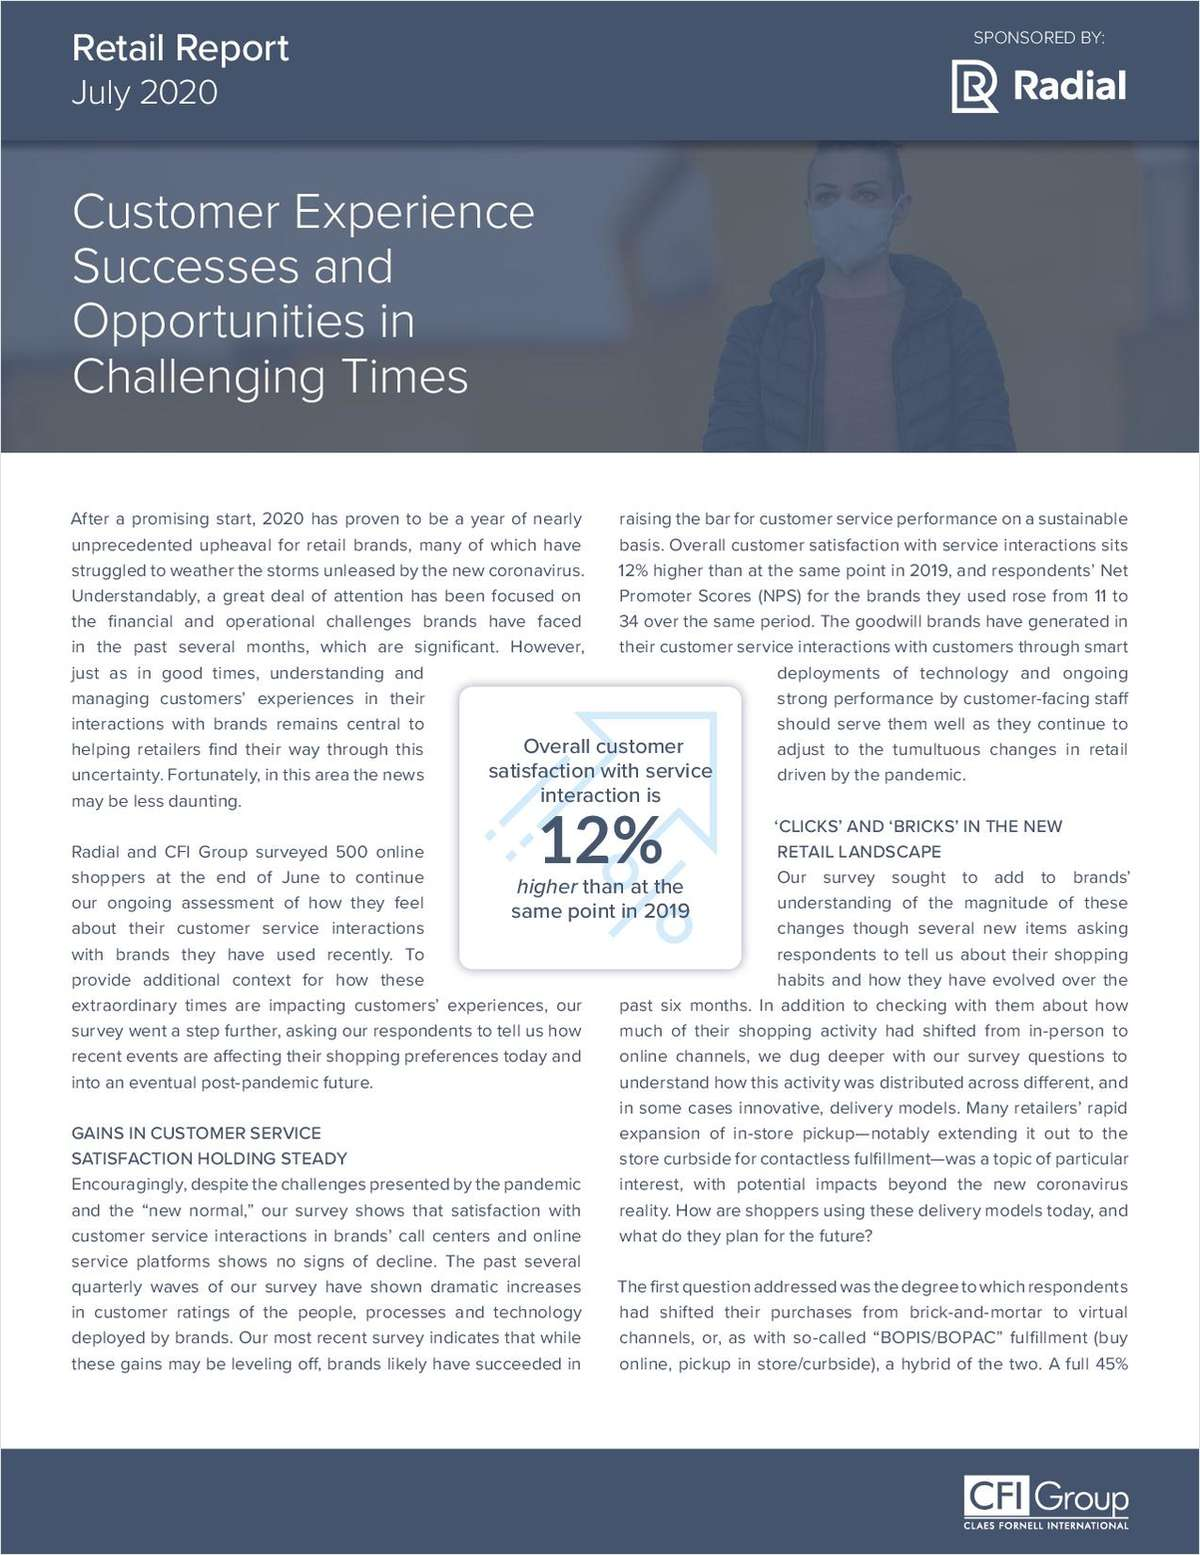 Customer Experience Successes and Opportunities in Challenging Times